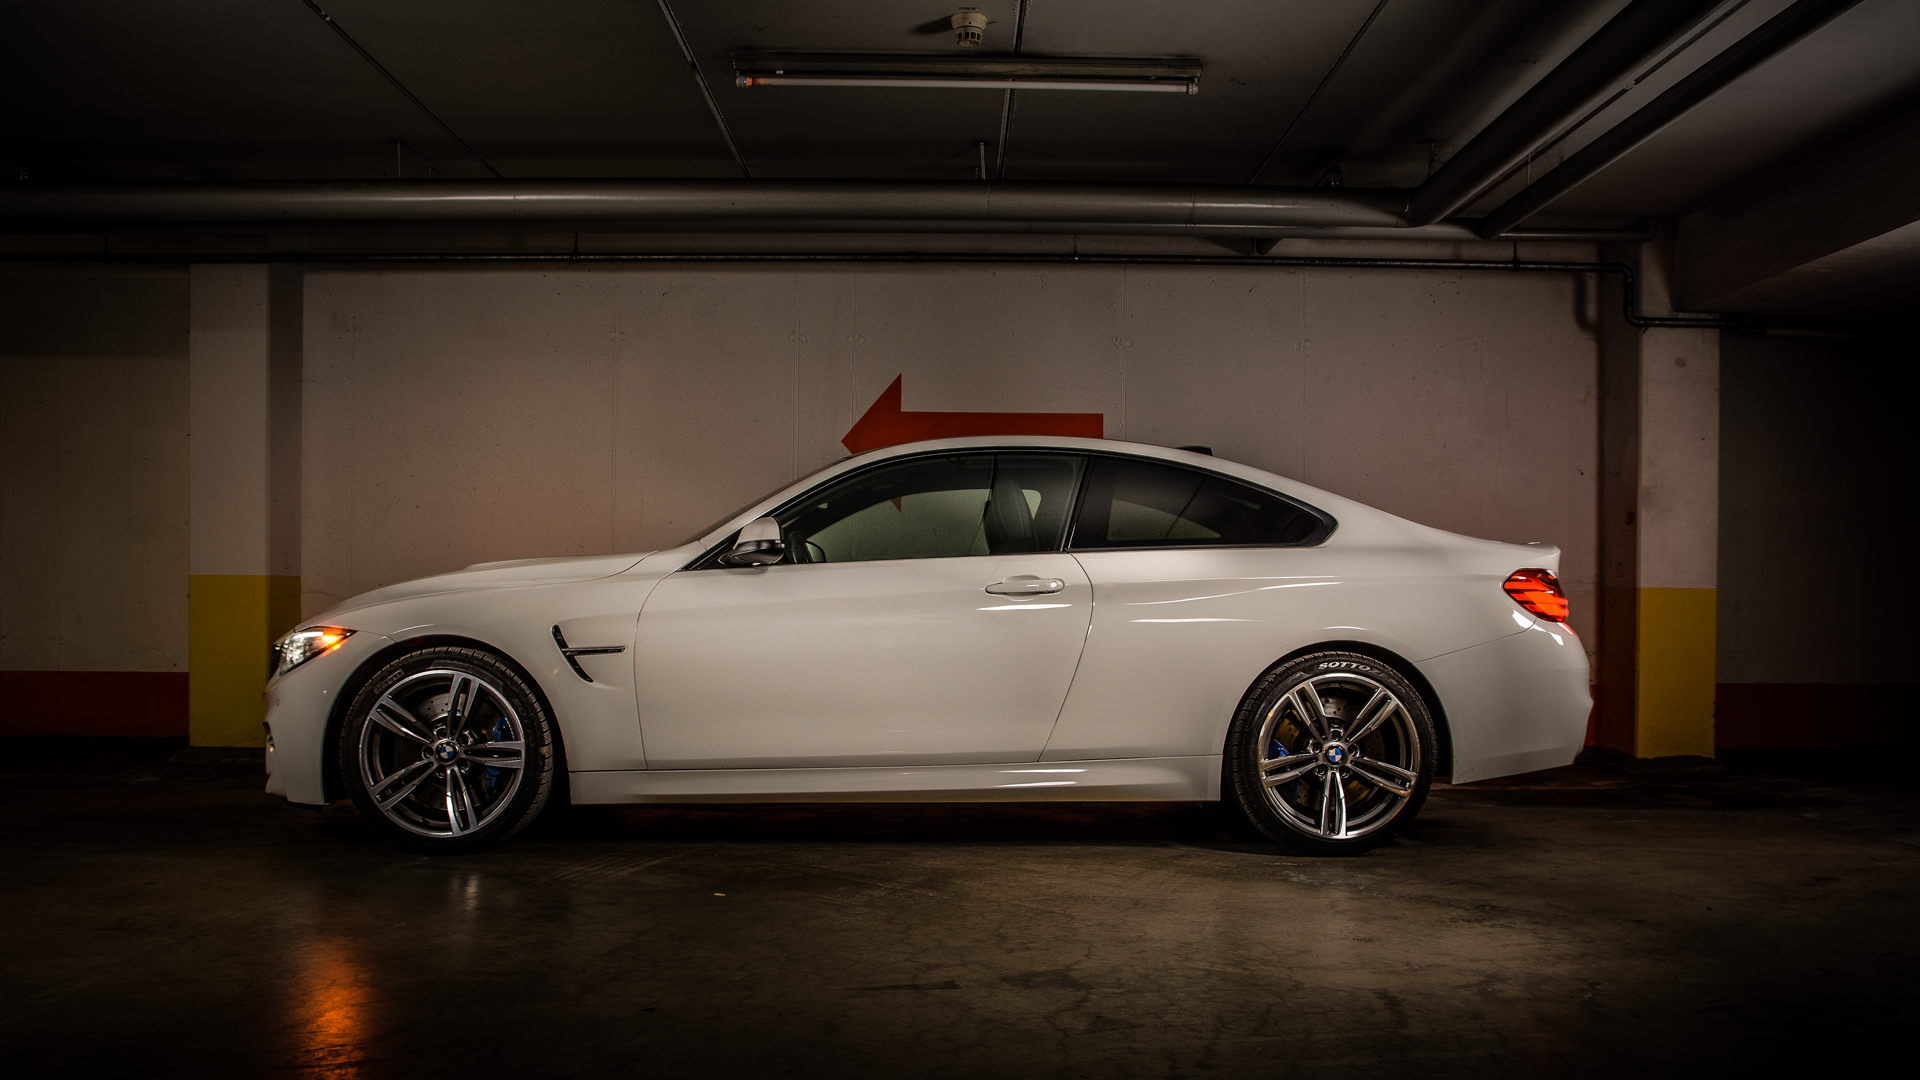 Rent Bmw M4 2014 Starting From 220 Per Day Available In Munich And Frankfurt Bmw M4 White Luxury Car Cars German S Bmw M4 Bmw Sports Cars Luxury